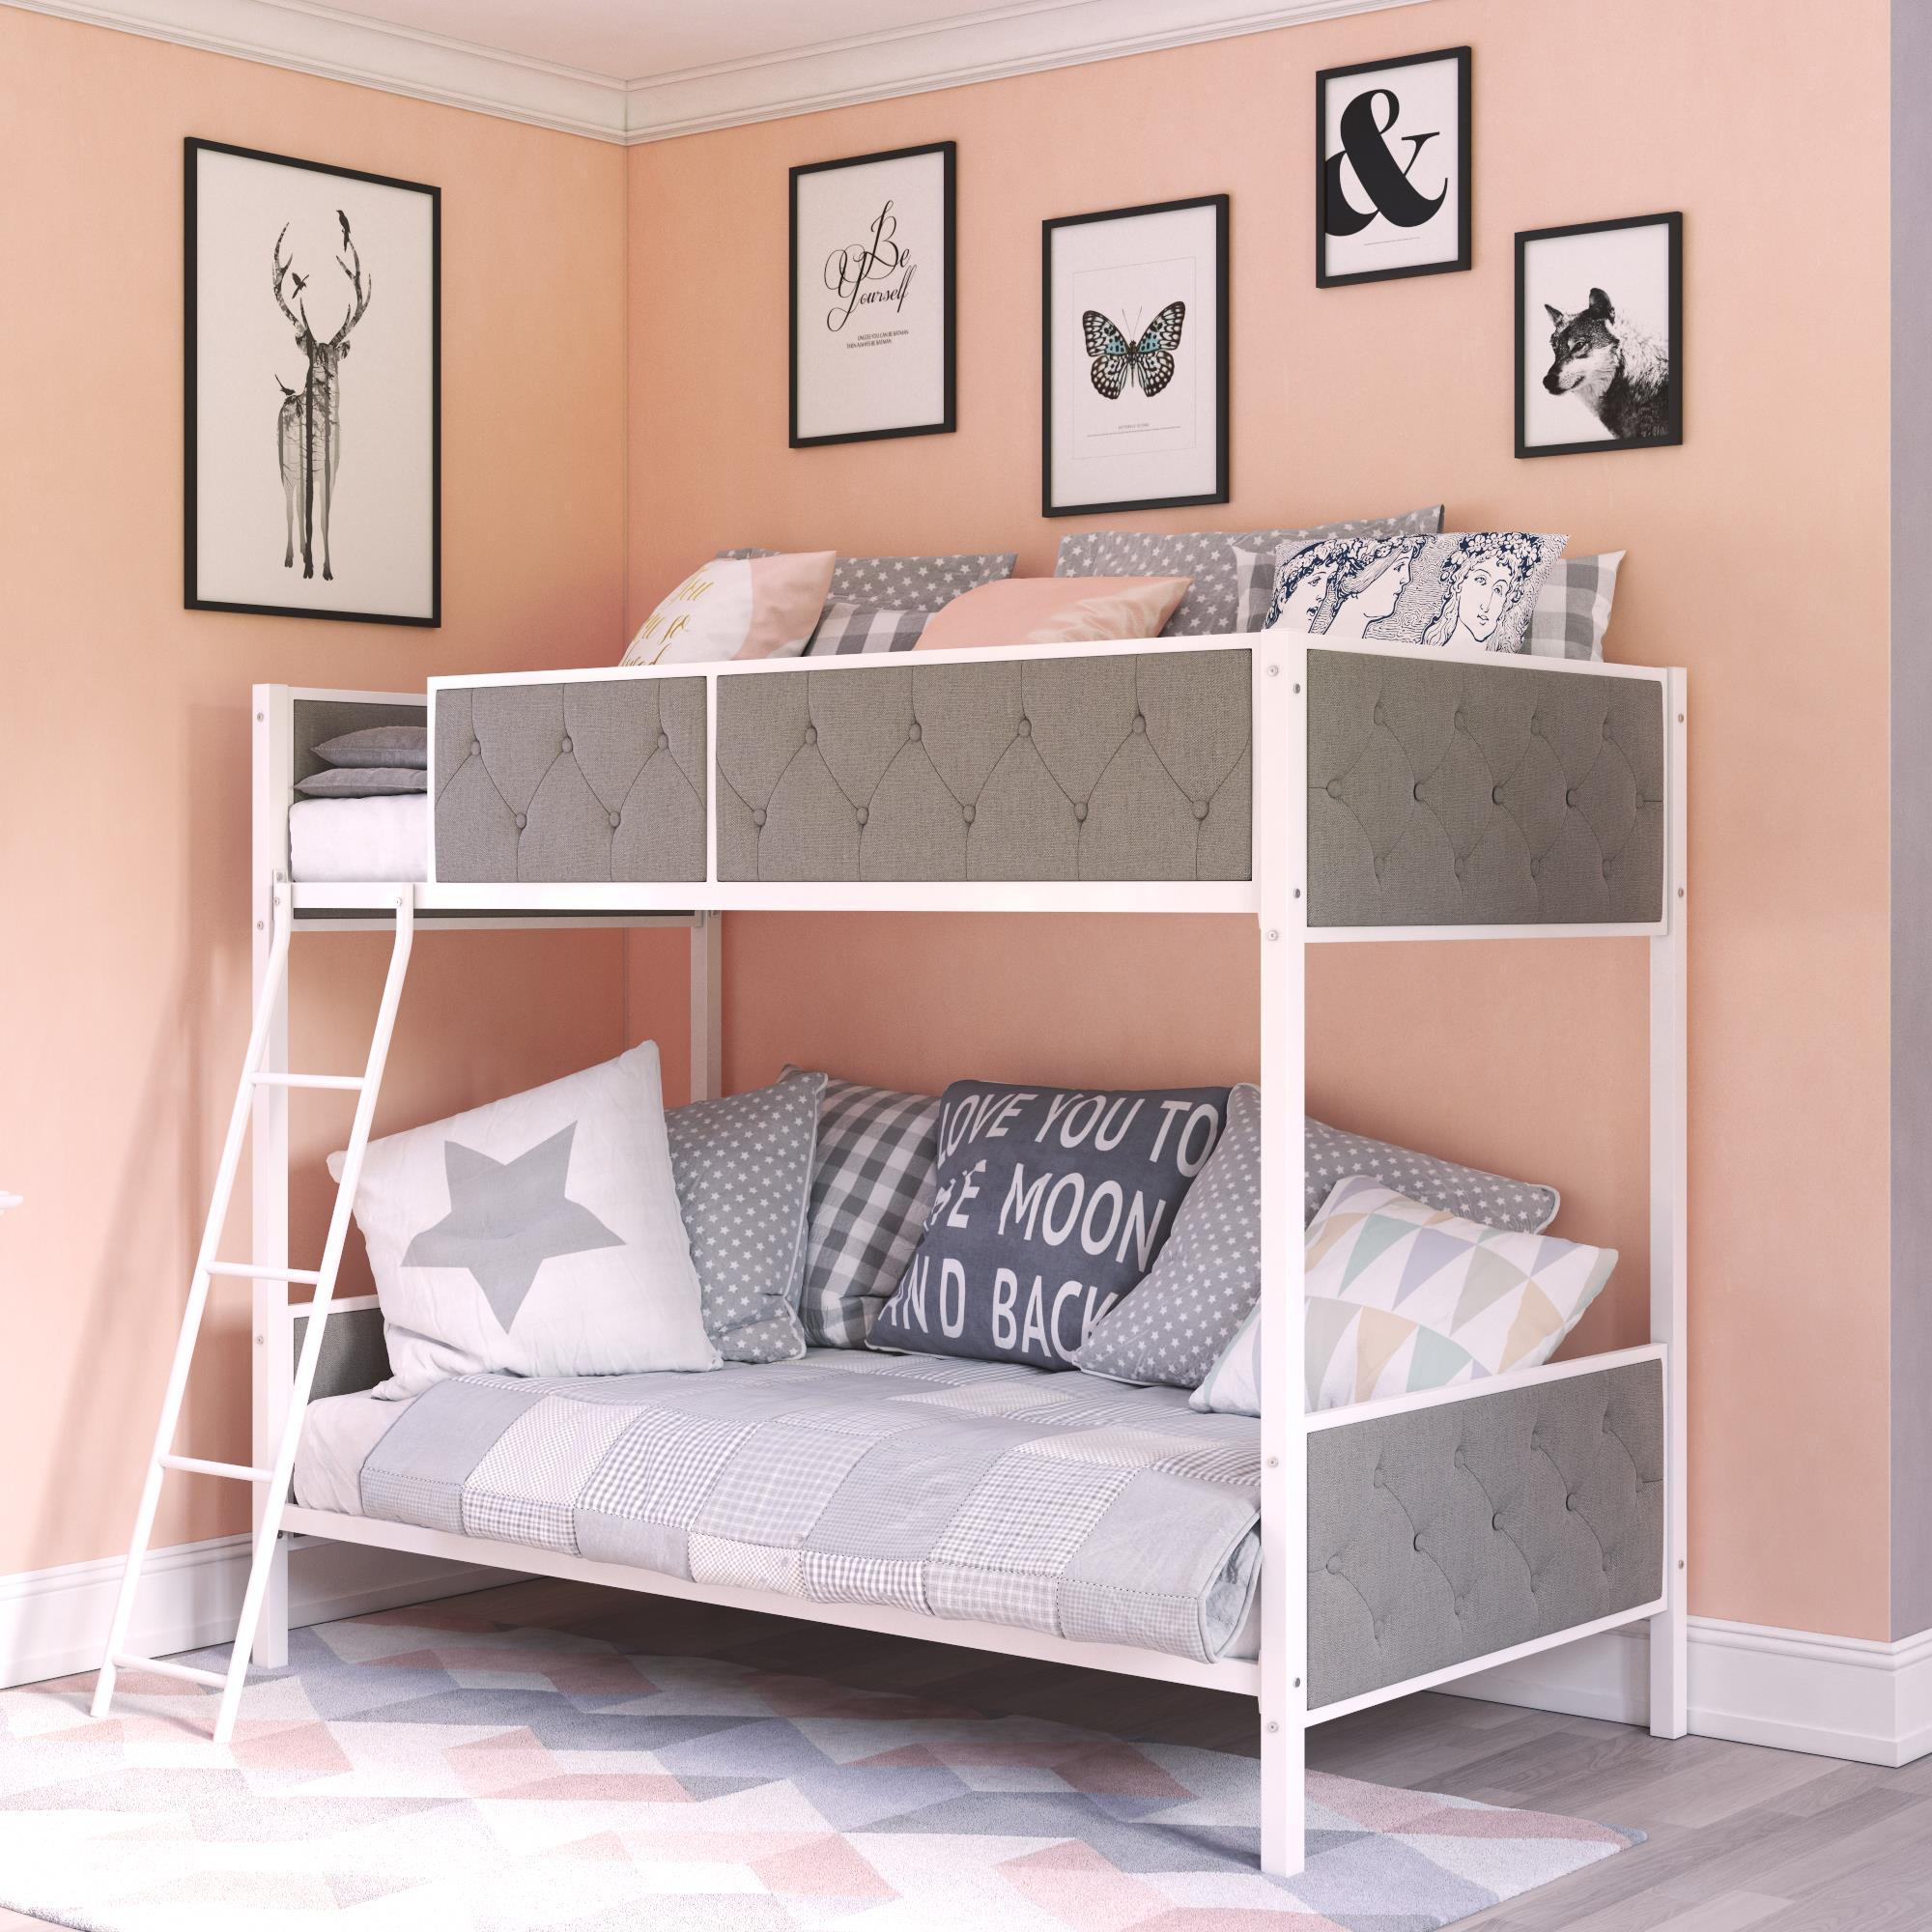 Chesterfield Upholstered Bunk Bed, White Metal with Grey Linen (Walmart)